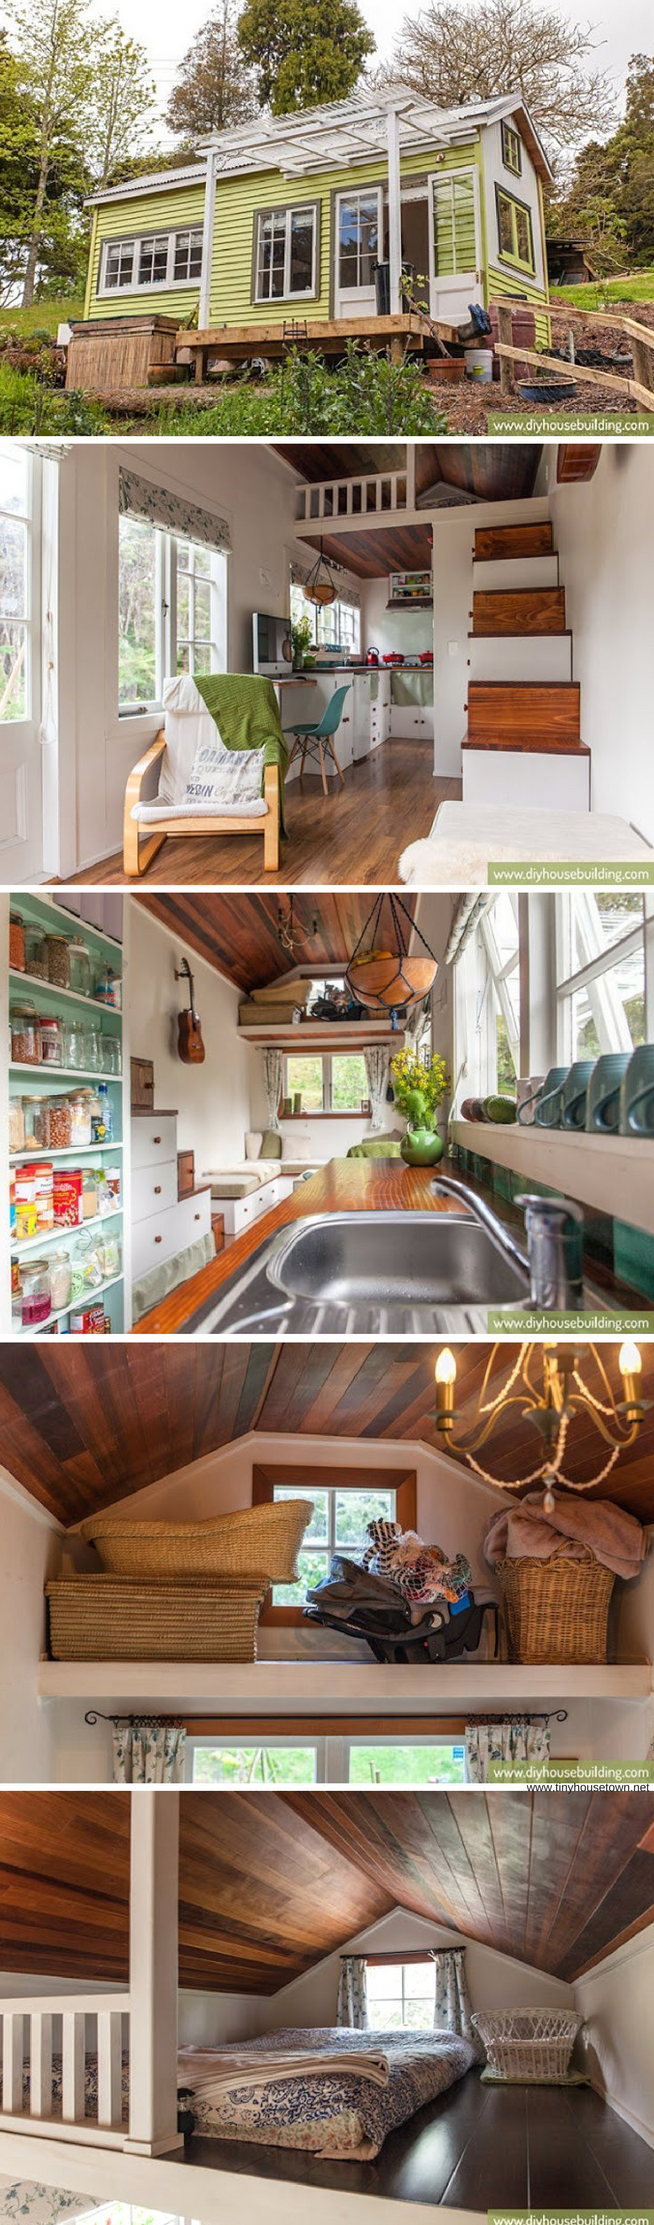 Lucy: a 186 sq ft tiny house that a family of three lives in! | Tiny ...